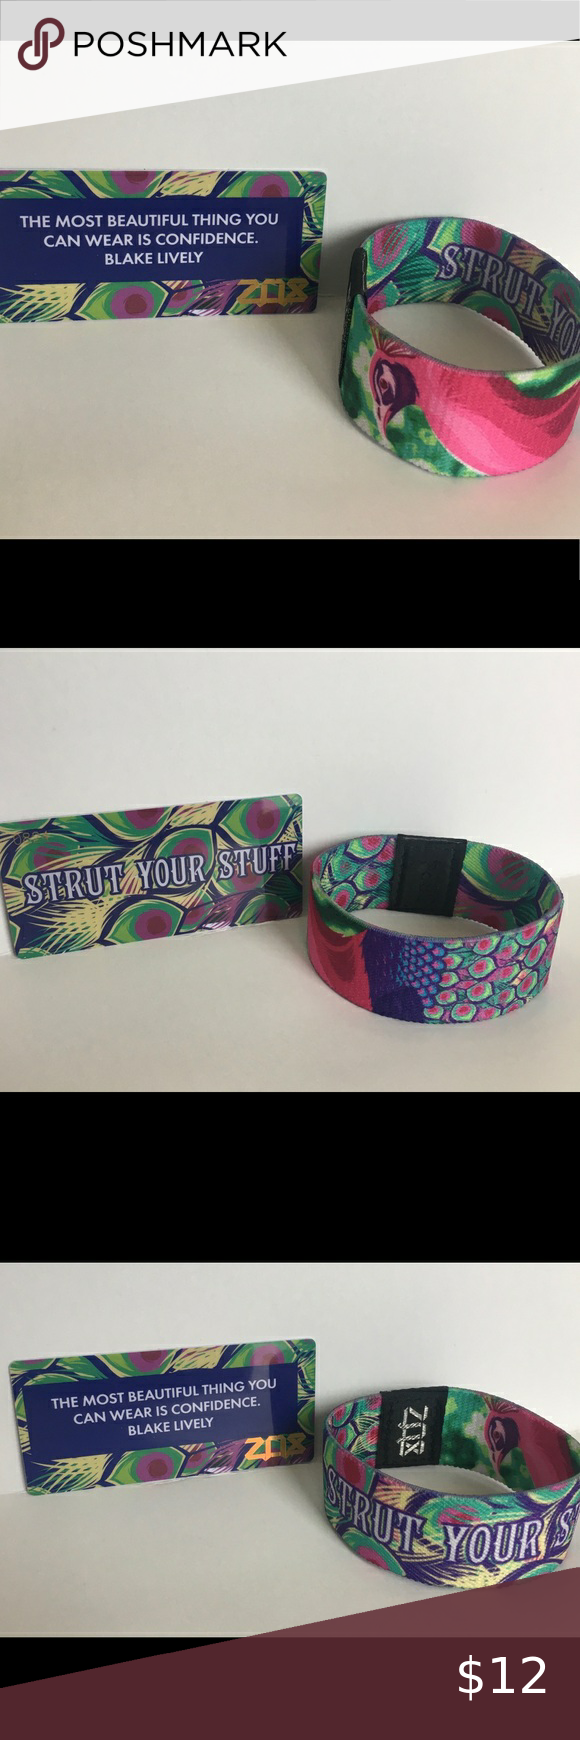 Zox Strut Your Stuff Wristband Like new condition, tried on  Size Medium  #0824 -does not come with plastic bag  Item comes from a smoke free home Zox Jewelry Bracelets